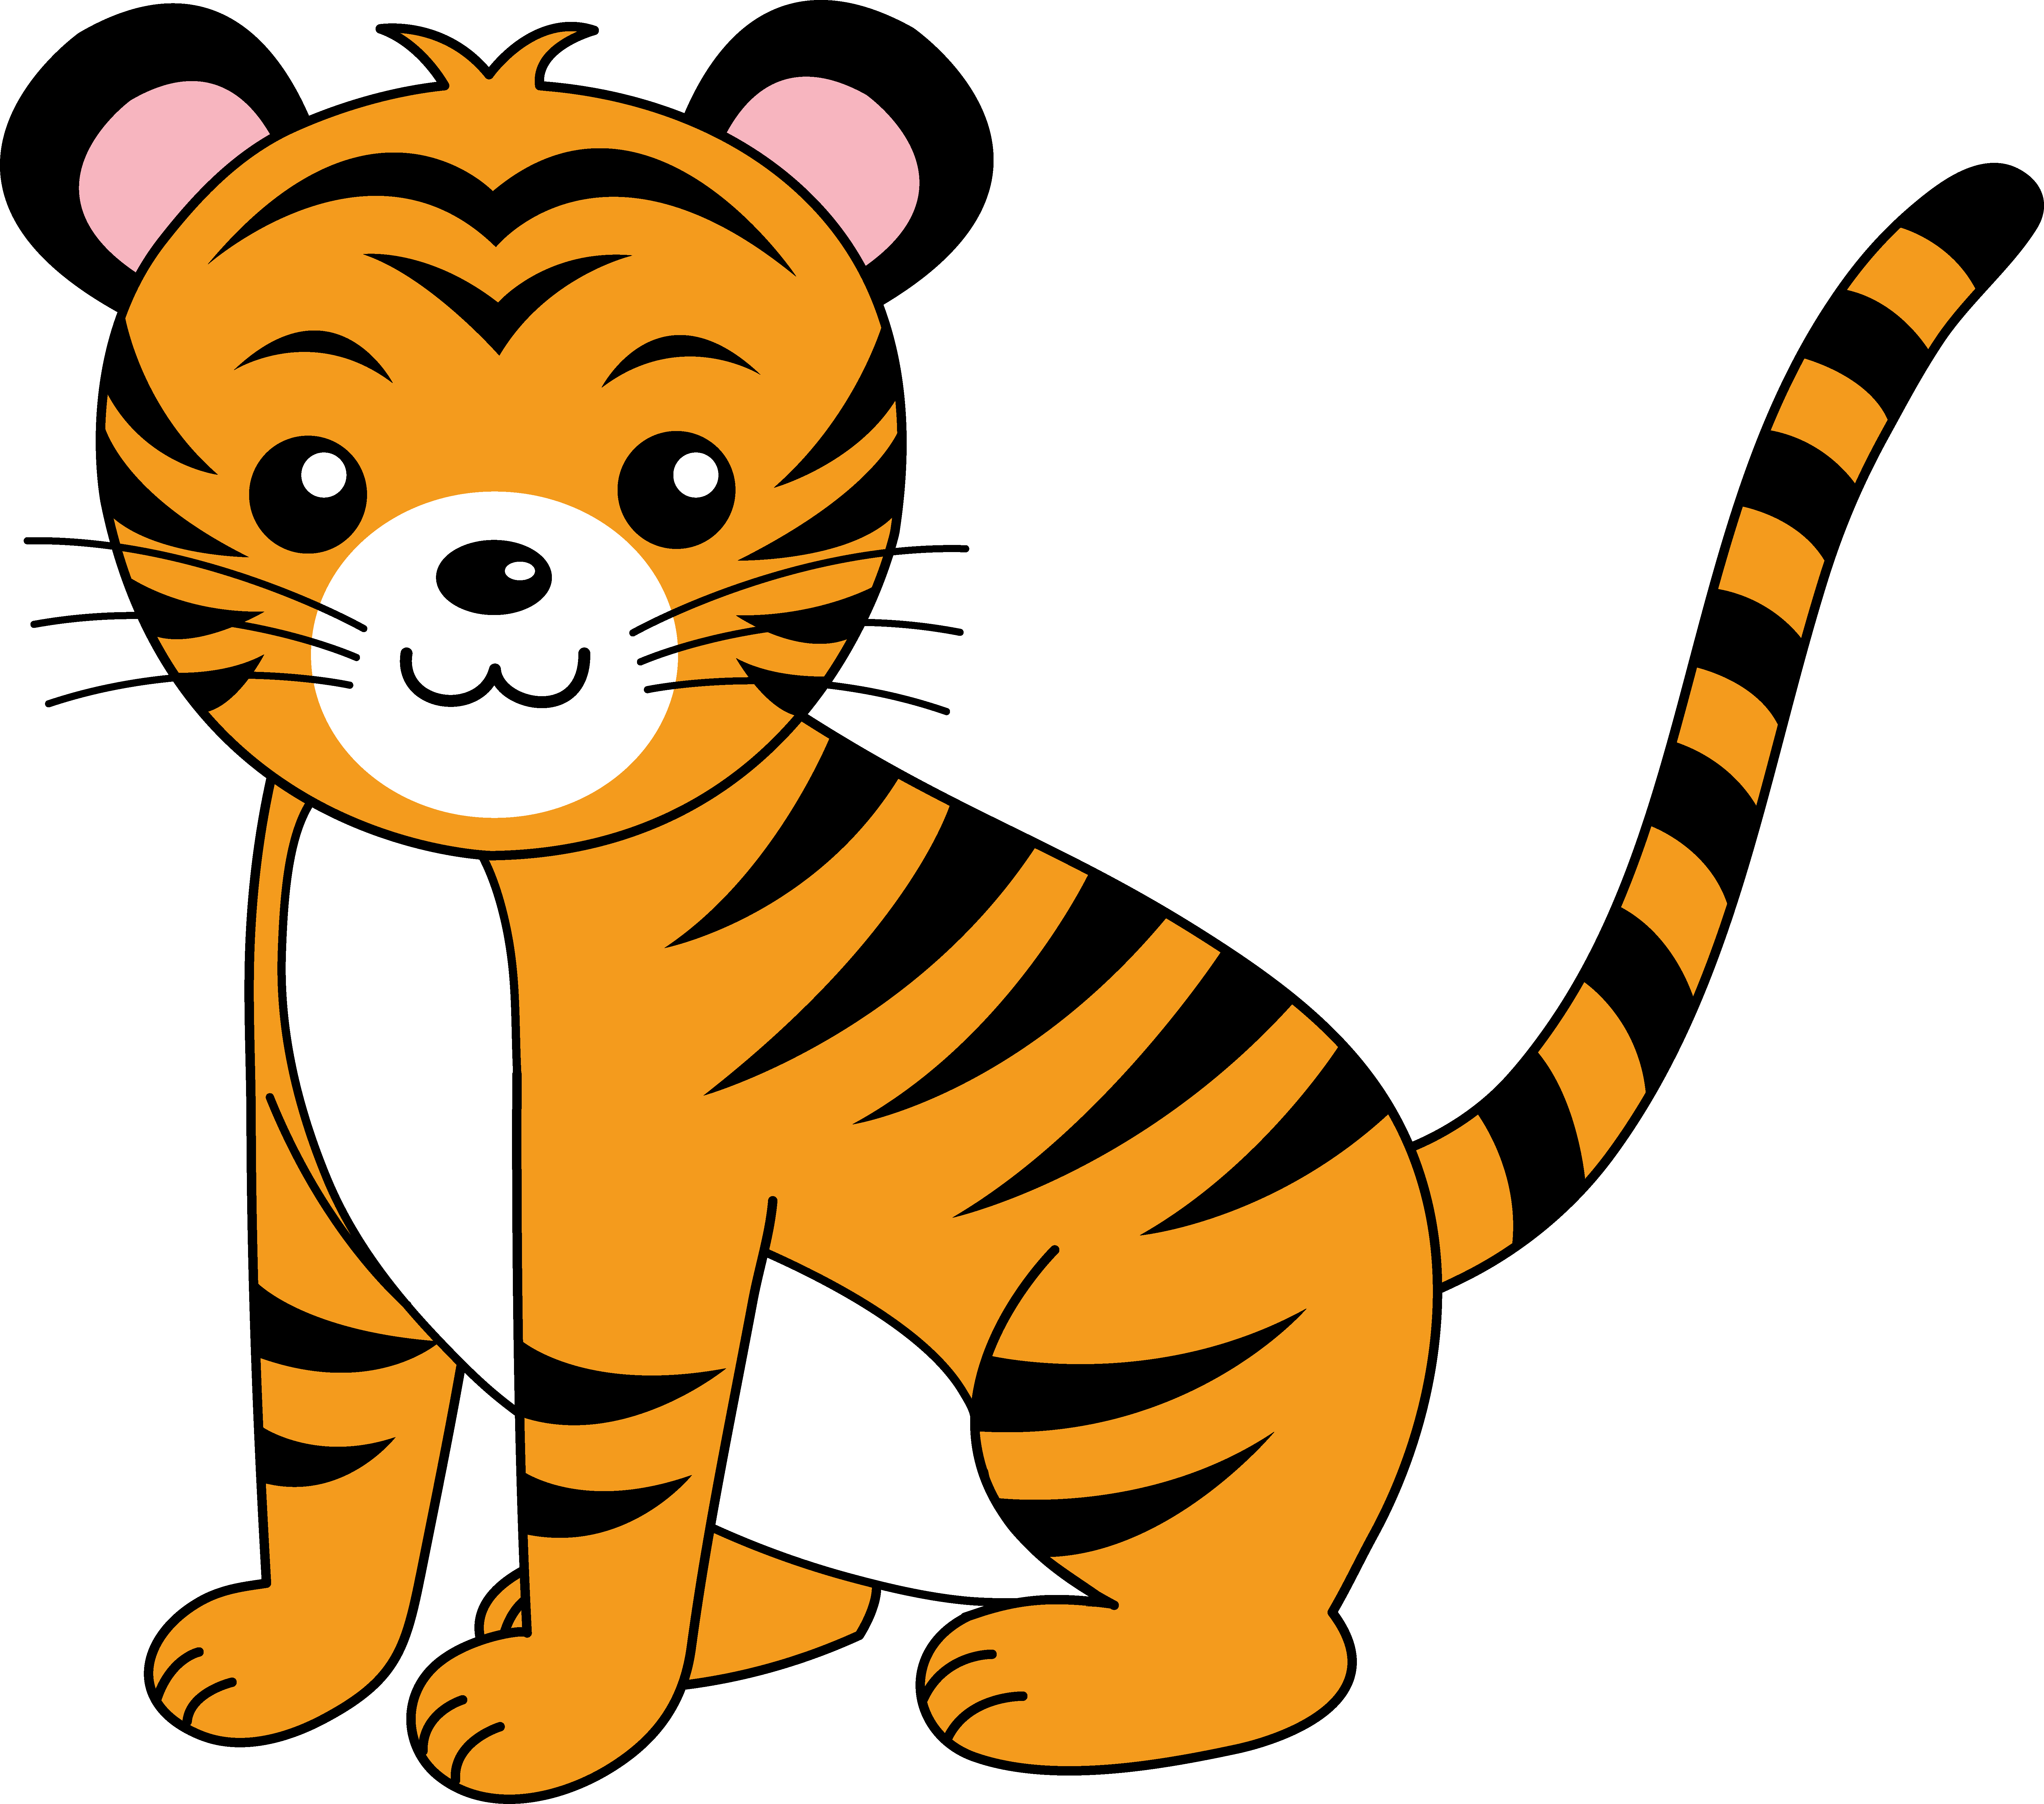 Tiger Clipart For Kids | Clipart Panda - Free Clipart Images